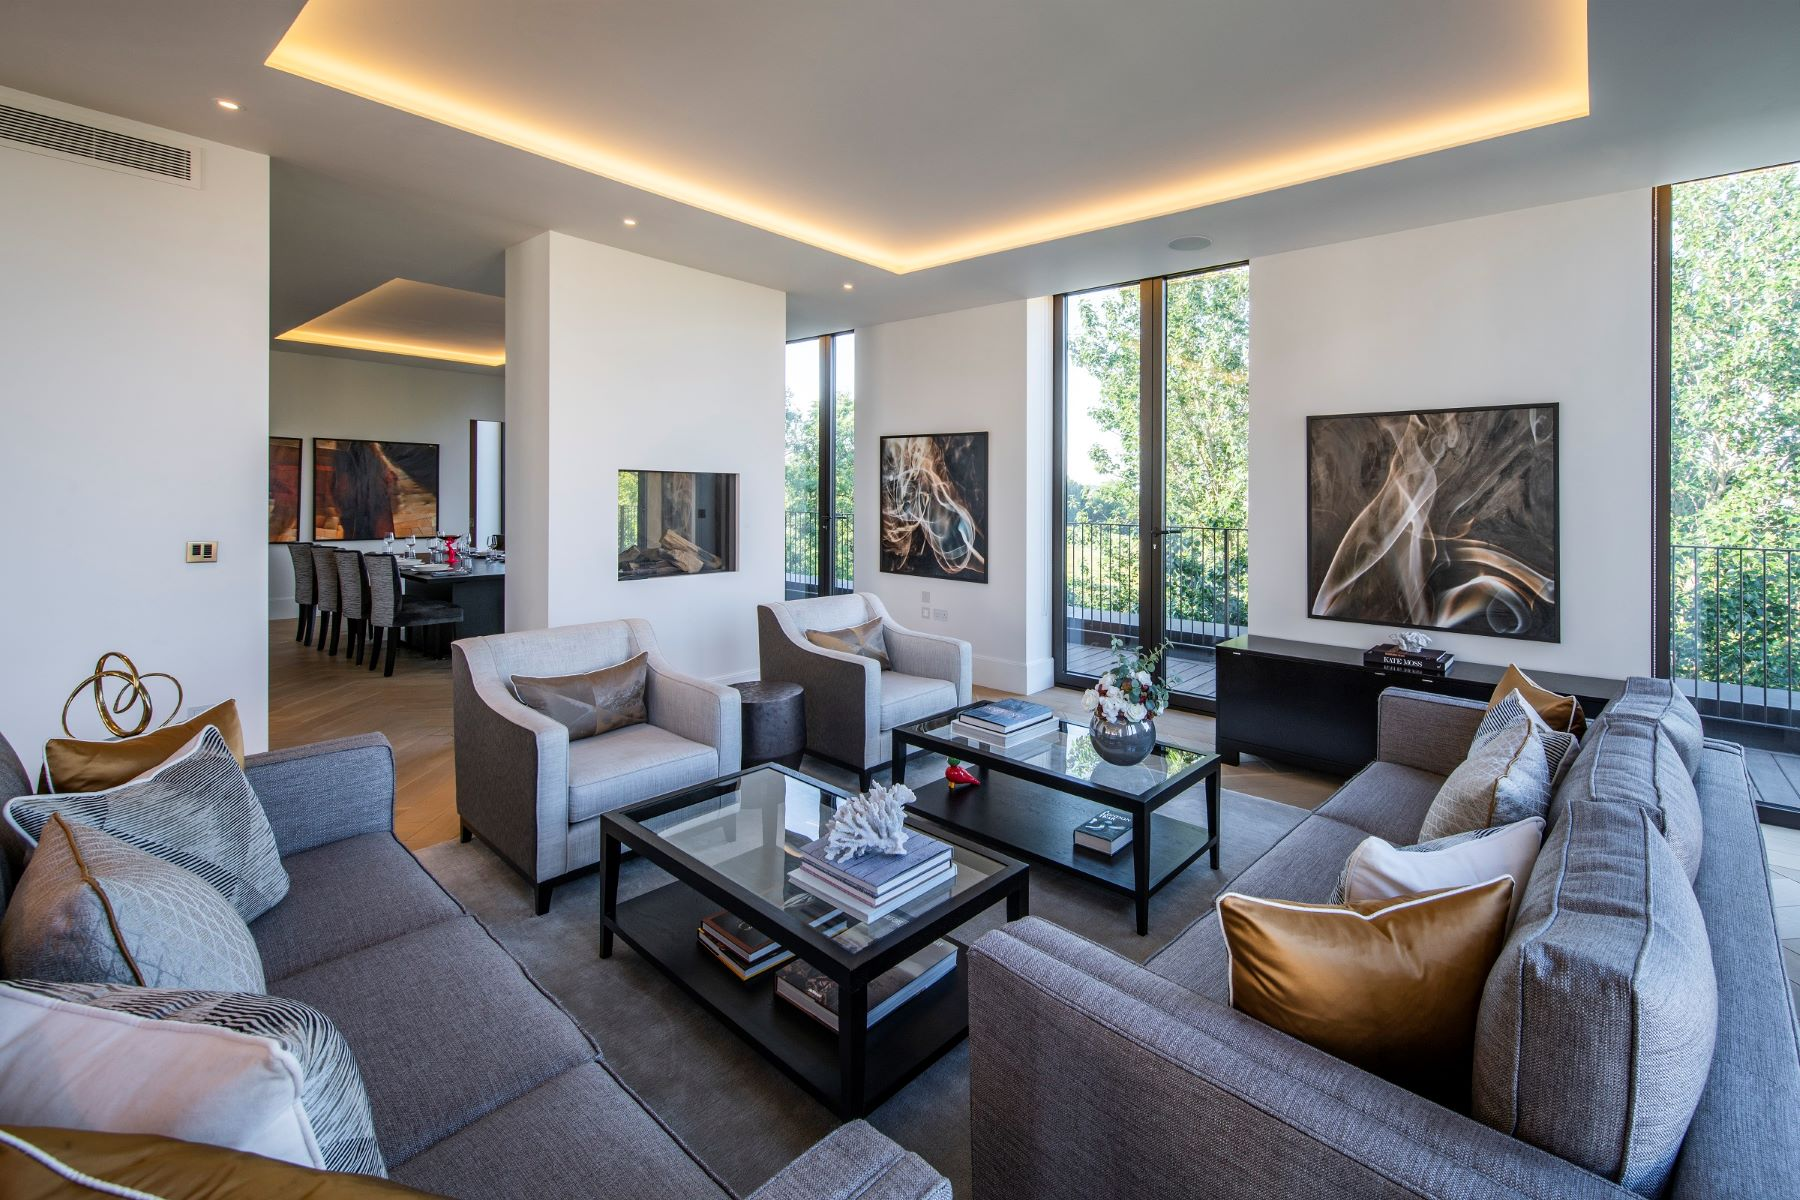 Apartments for Sale at St. Edmunds Terrace, London St Edmunds Terrace London, England NW8 7QP United Kingdom